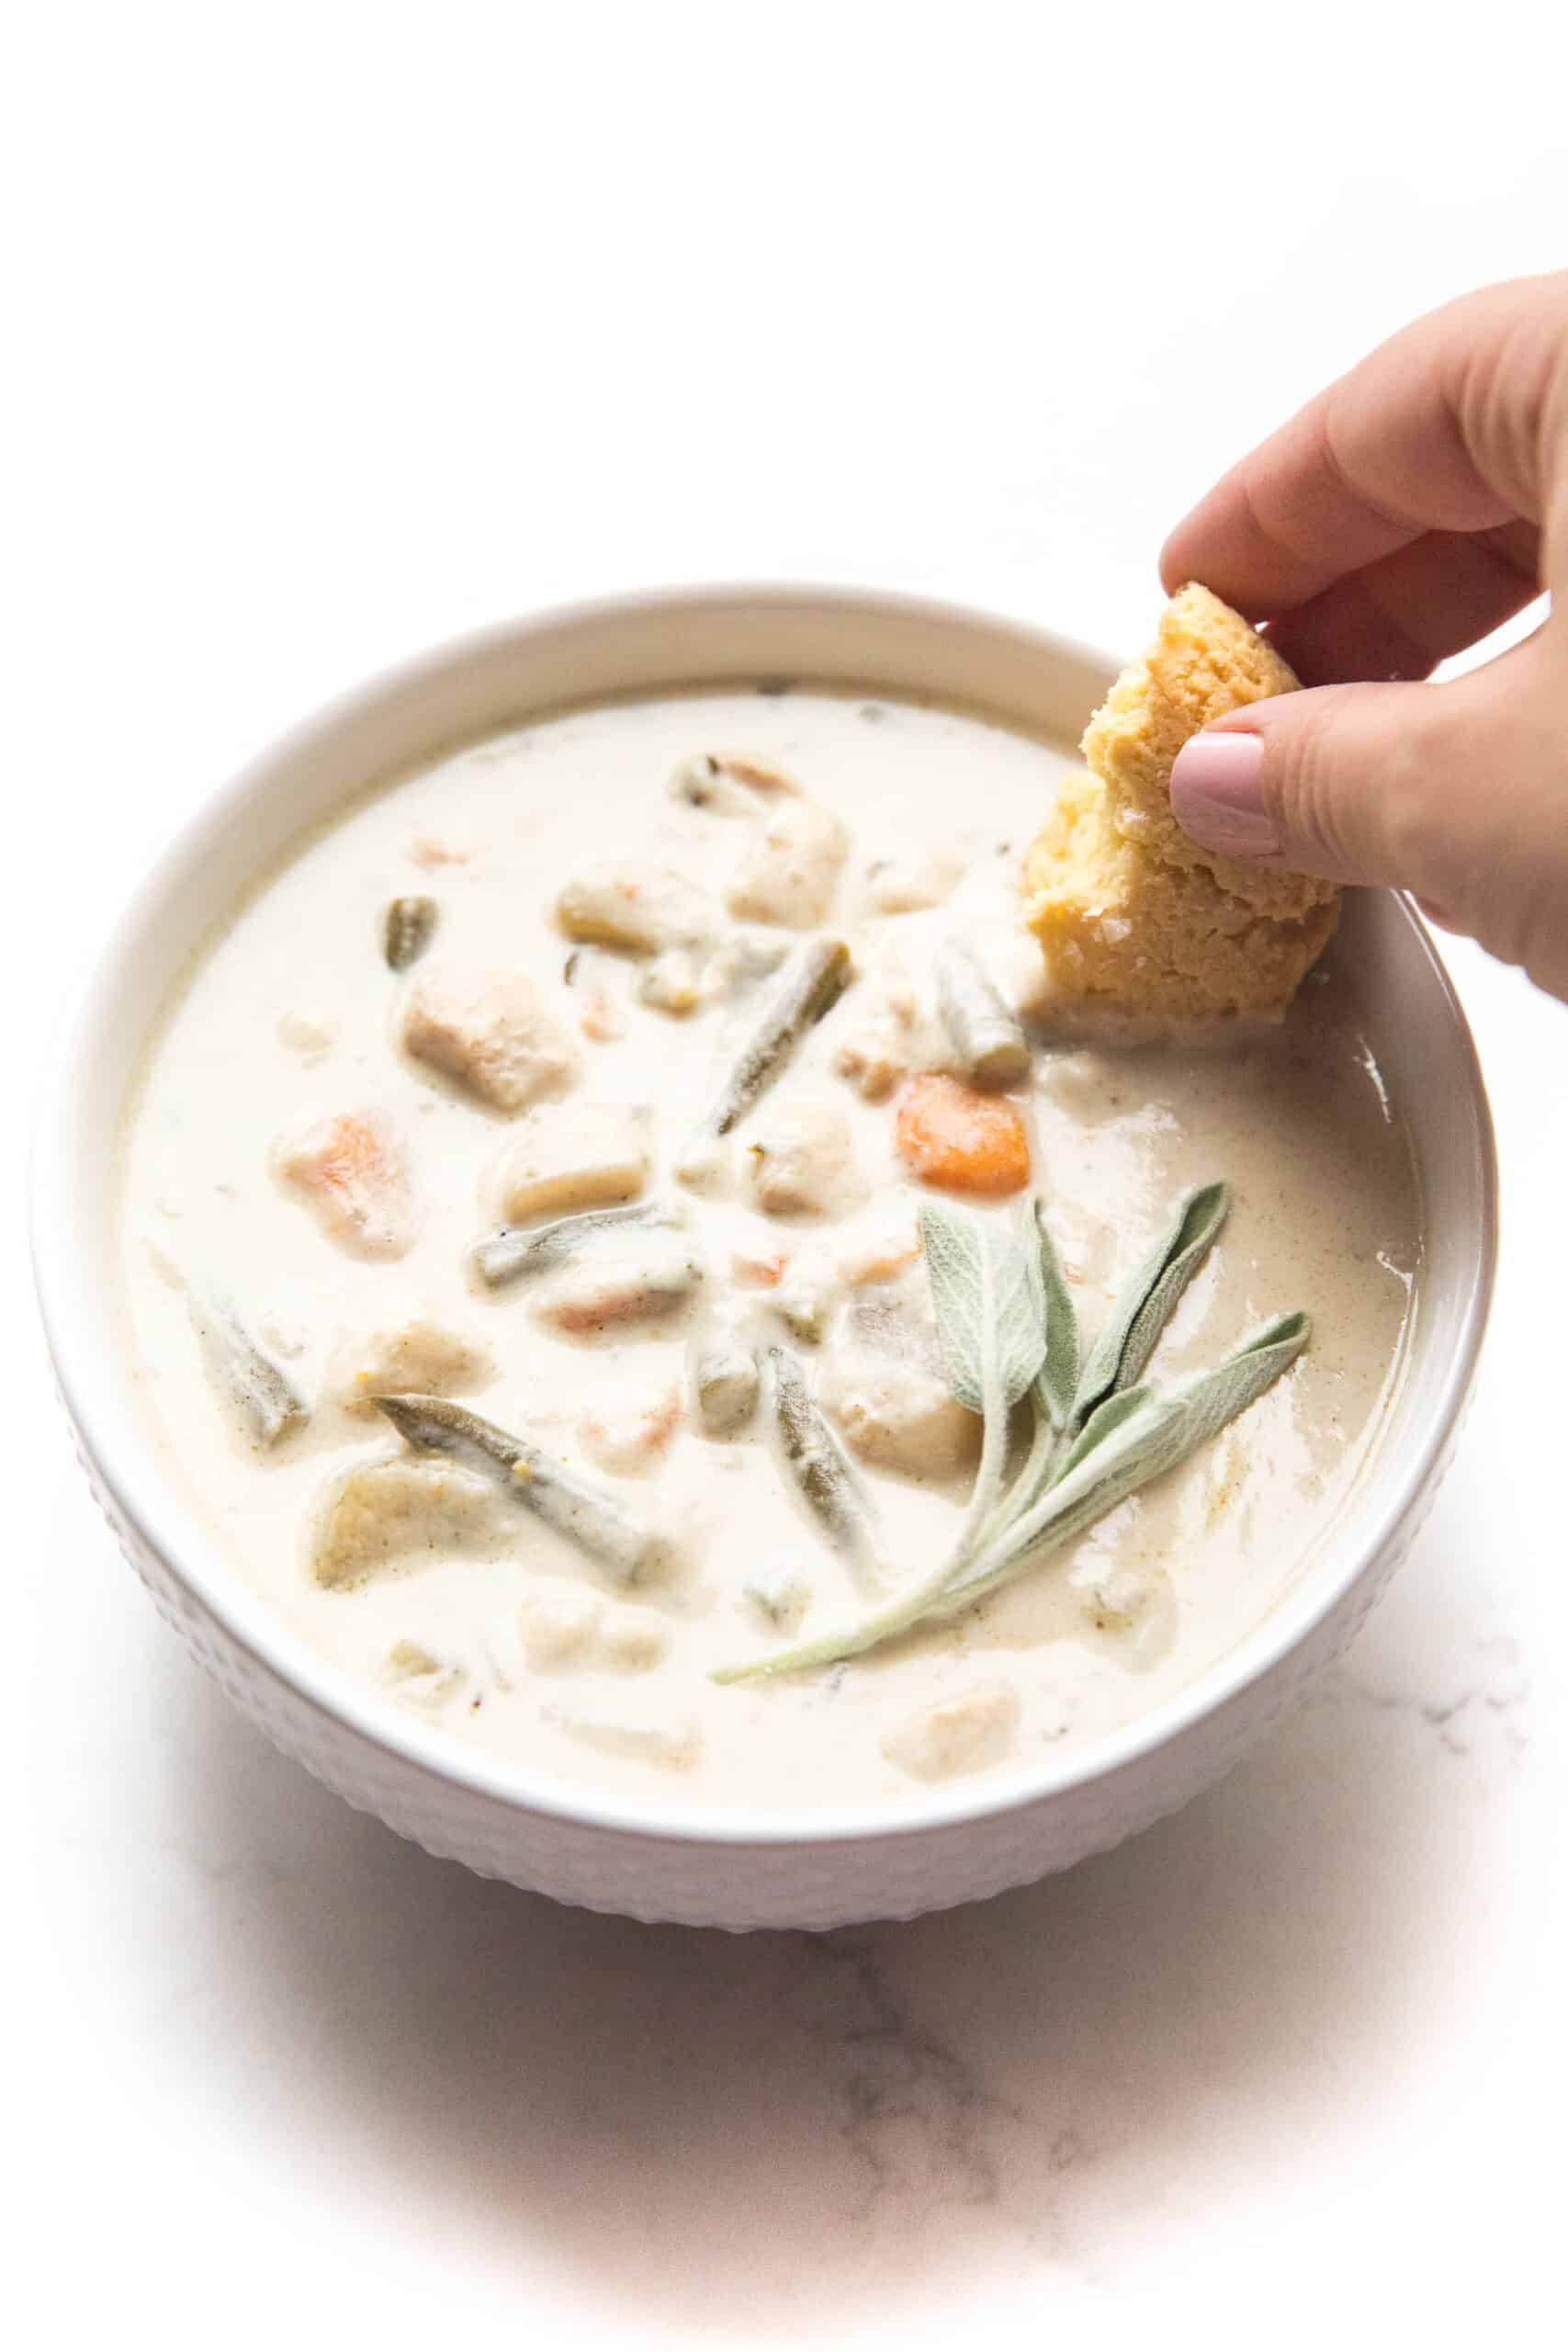 dipping a keto biscuit in creamy chicken chowder in a white bowl + background